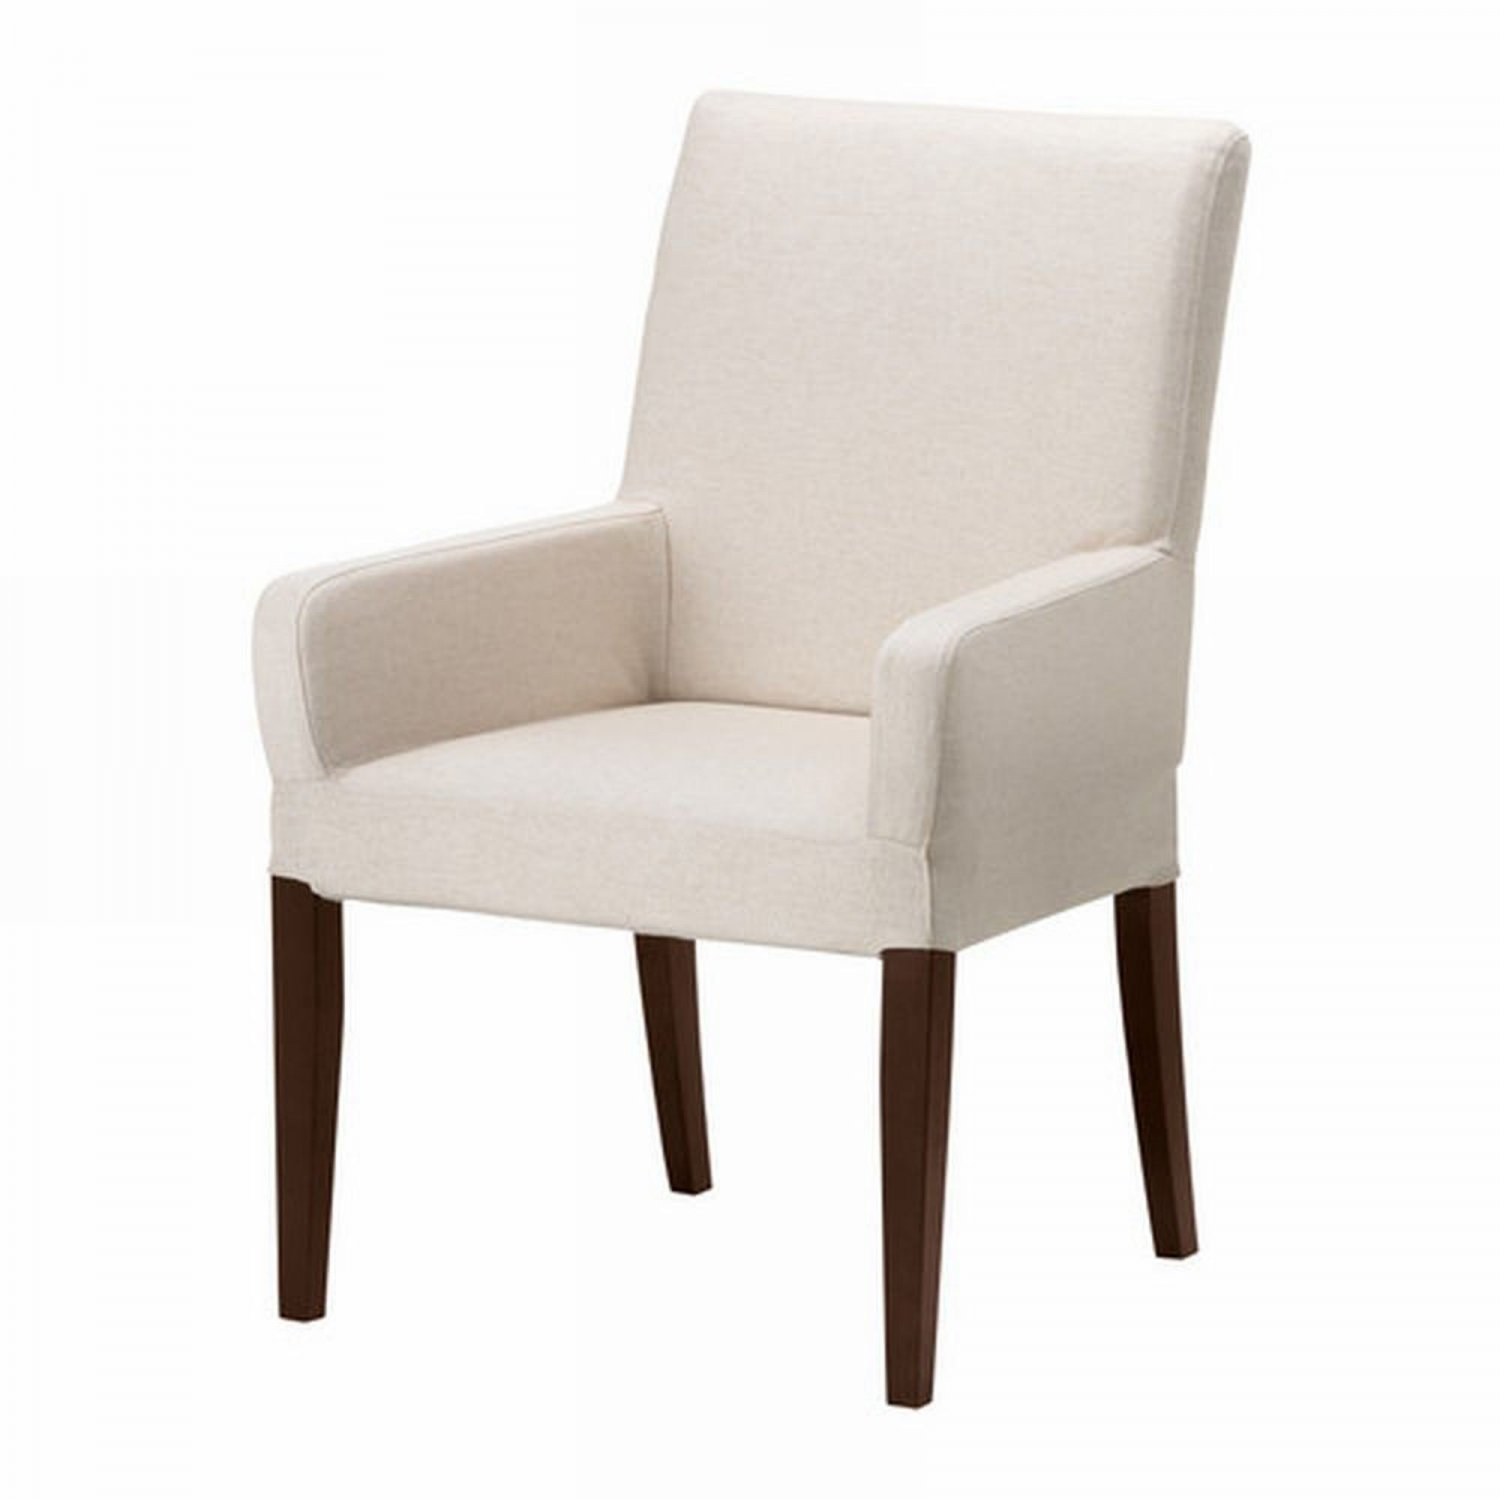 ikea henriksdal chair w arms slipcover cover 21 54cm linneryd natural beige armrests. Black Bedroom Furniture Sets. Home Design Ideas